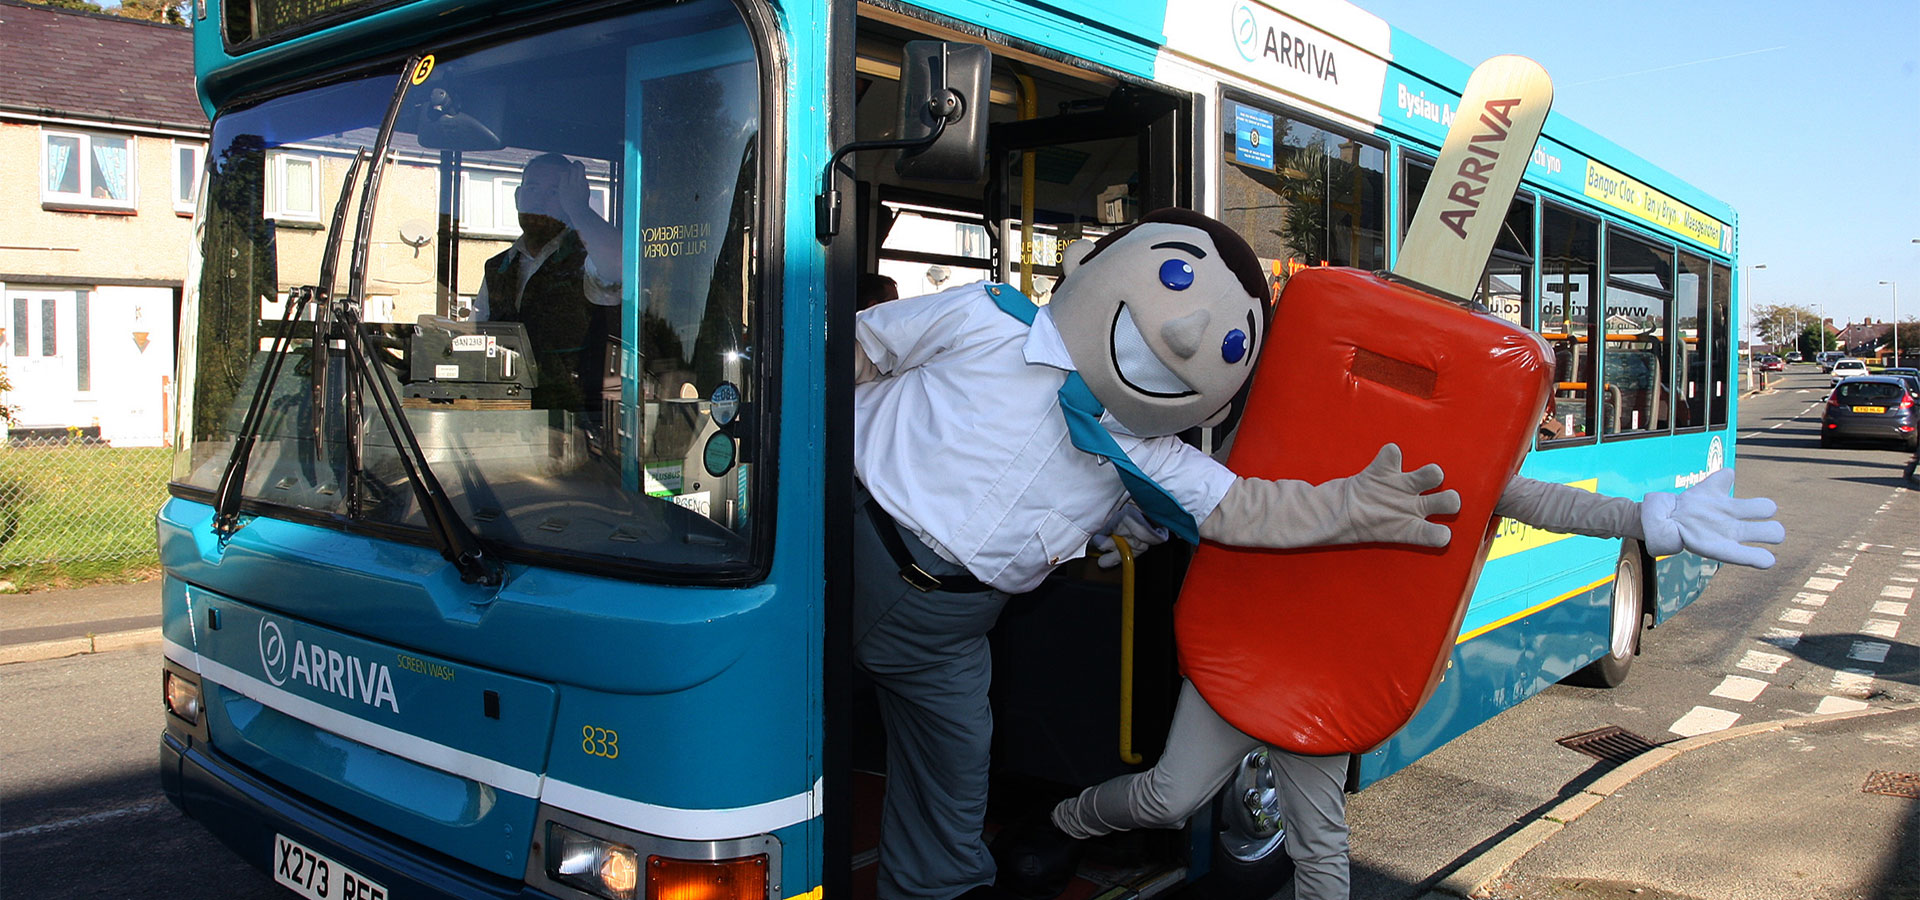 Promotional staff for Arriva event